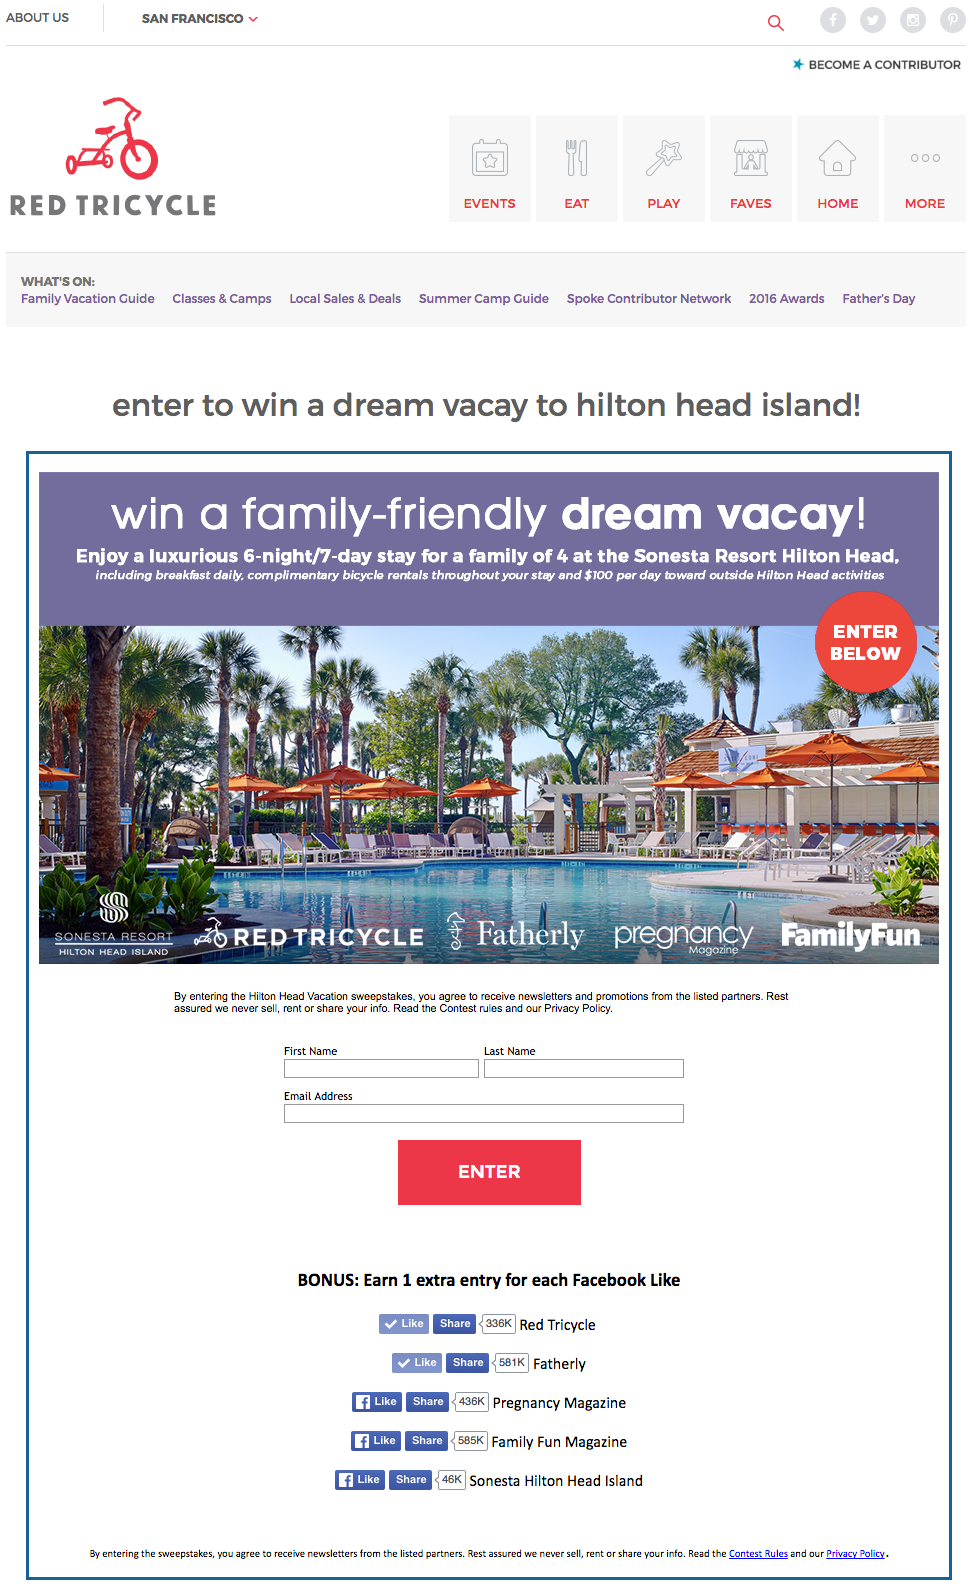 screencapture-redtri-com-dream-vacay-1466023717366